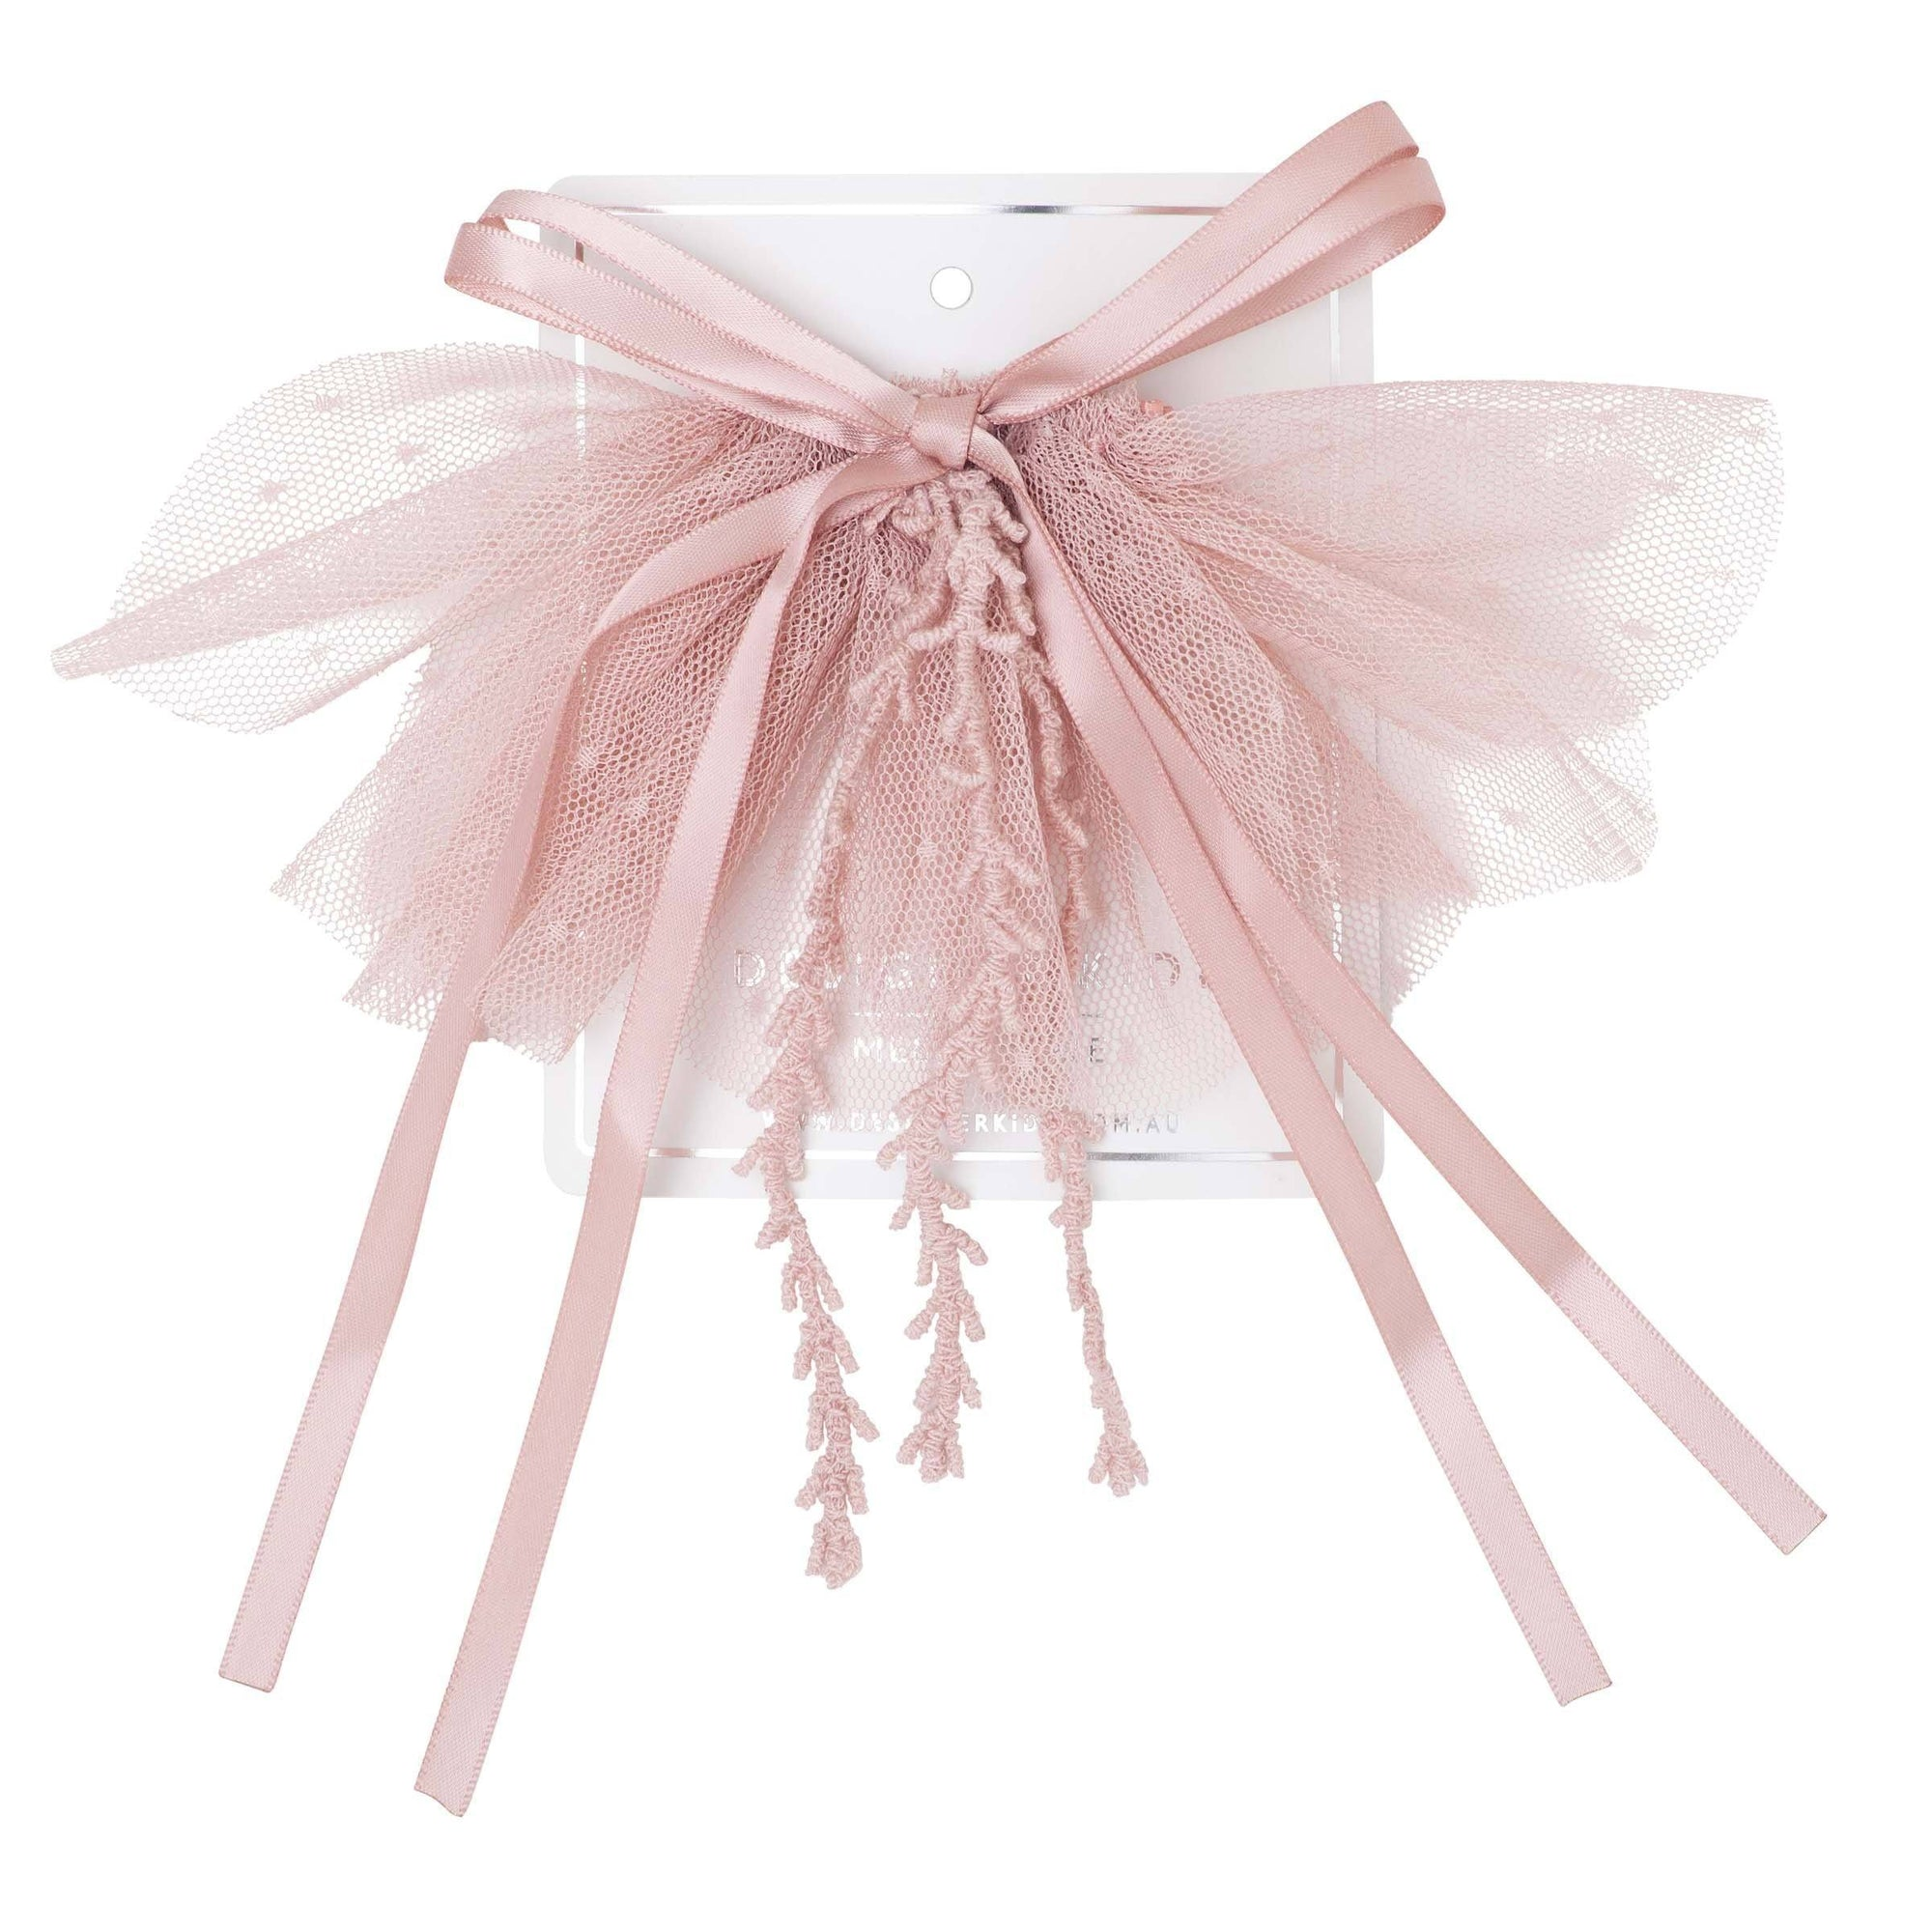 Buy Layla Bow Tie Hair Clip - Dusty Pink - Designer Kidz | Special Occasions, Party Wear & Weddings  | Sizes 000-16 | Little Girls Party Dresses, Tutu Dresses, Flower Girl Dresses | Pay with Afterpay | Free AU Delivery Over $80